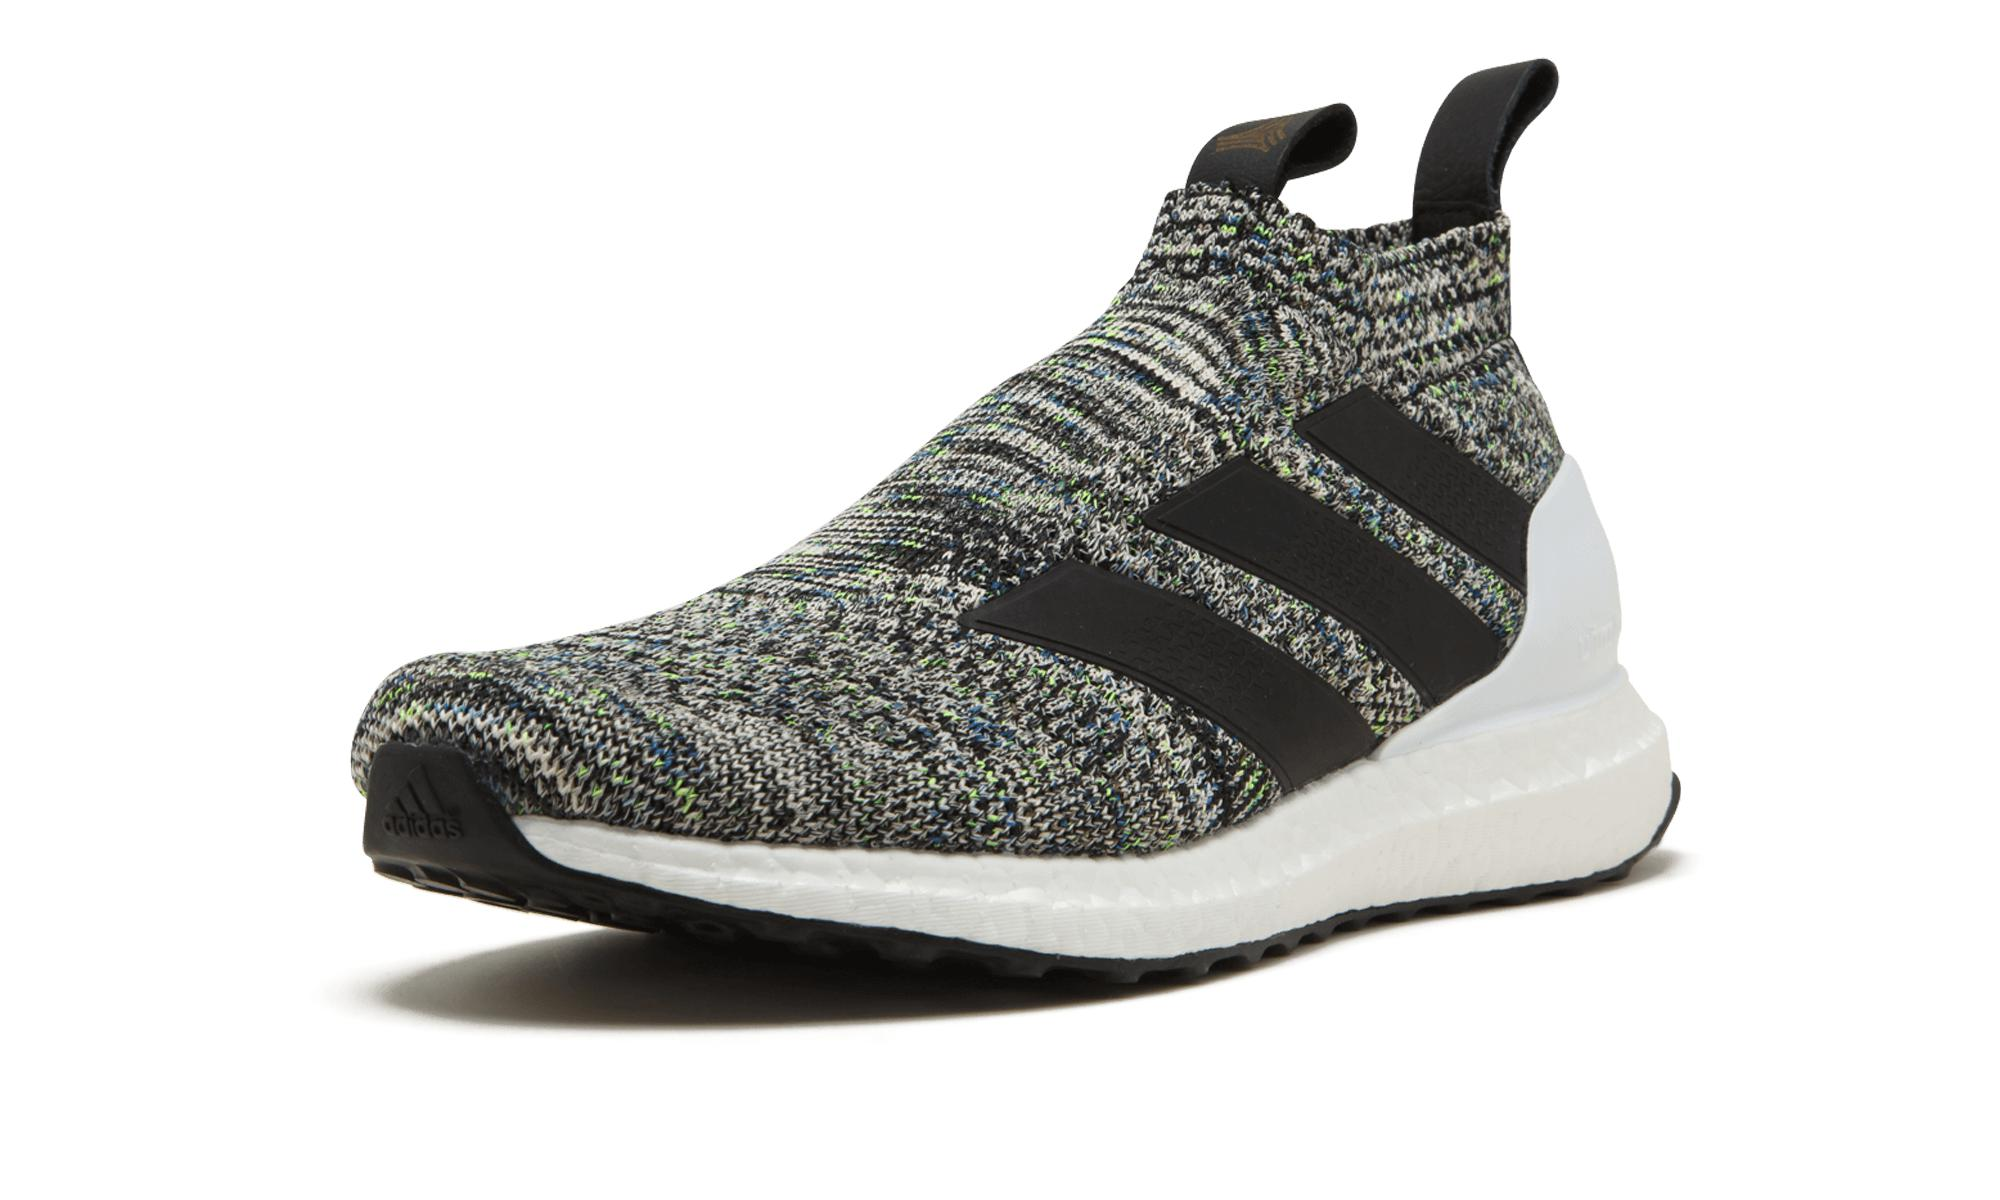 factory authentic release info on factory outlets adidas A16+ Ultraboost Shoes - Size 13 in Black for Men - Save 25 ...